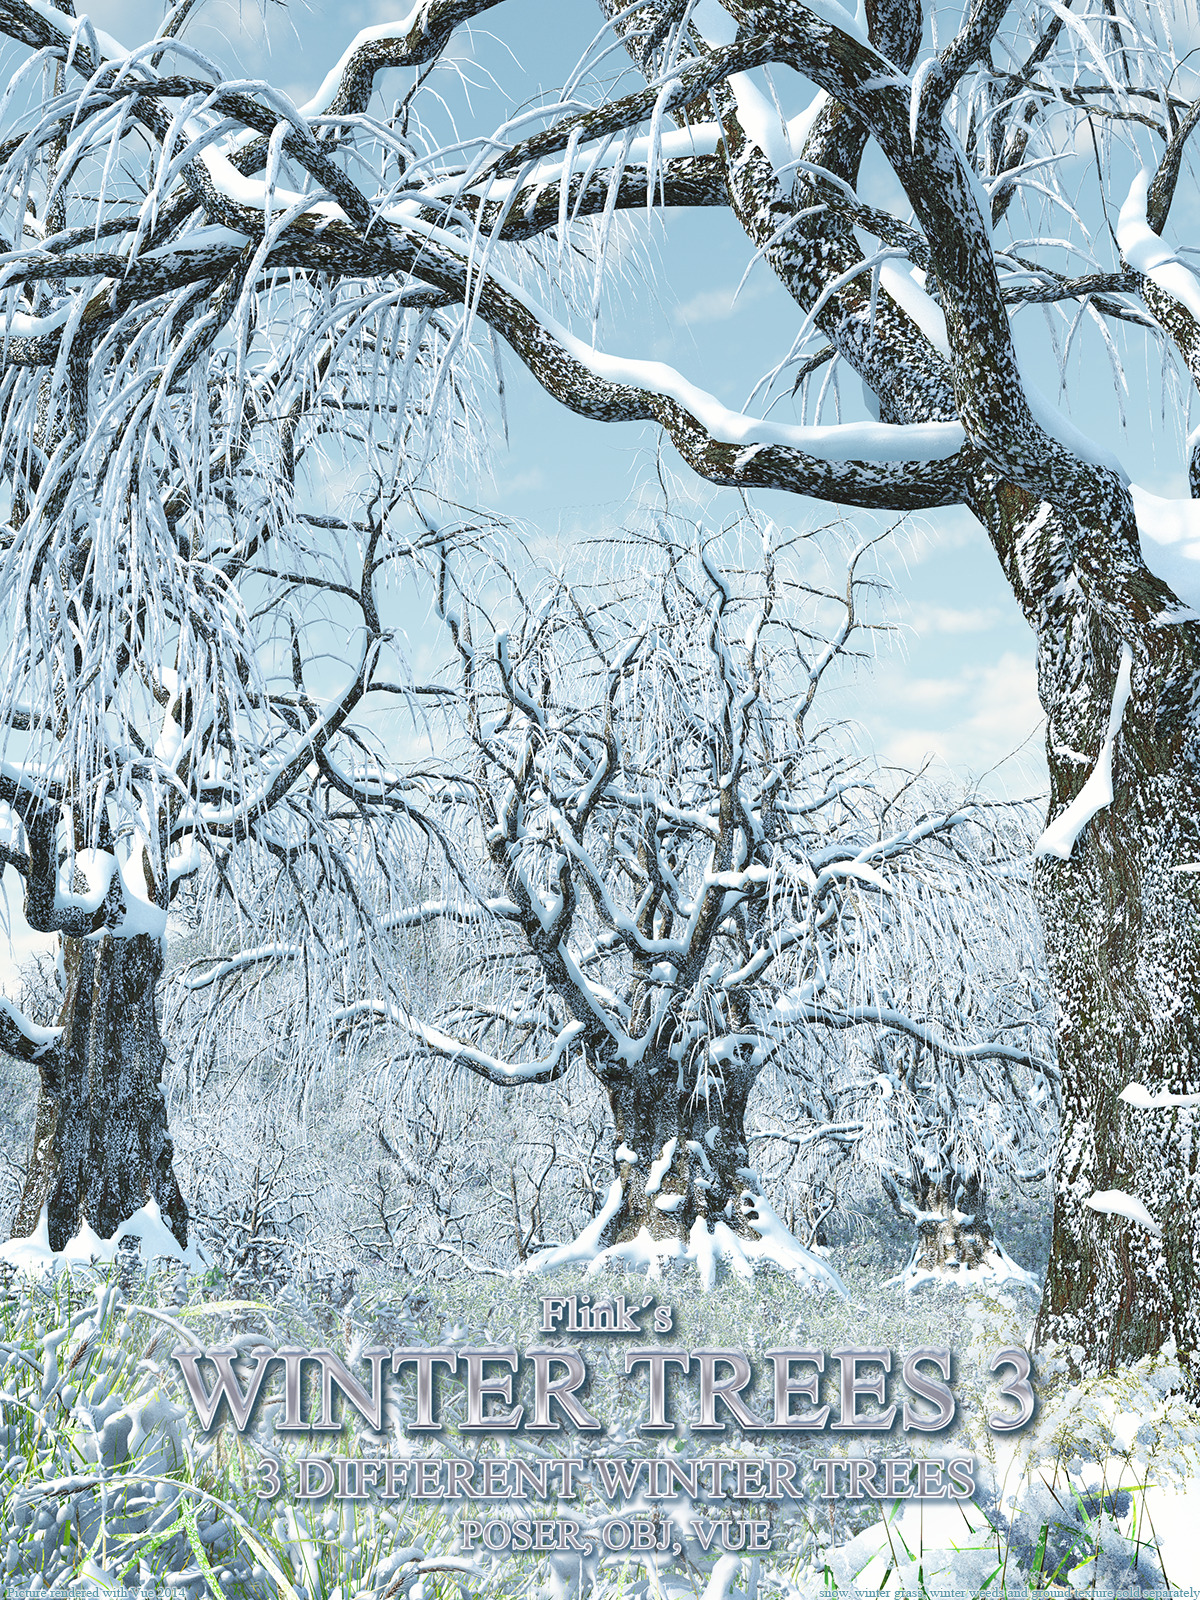 Flinks Winter Trees 3